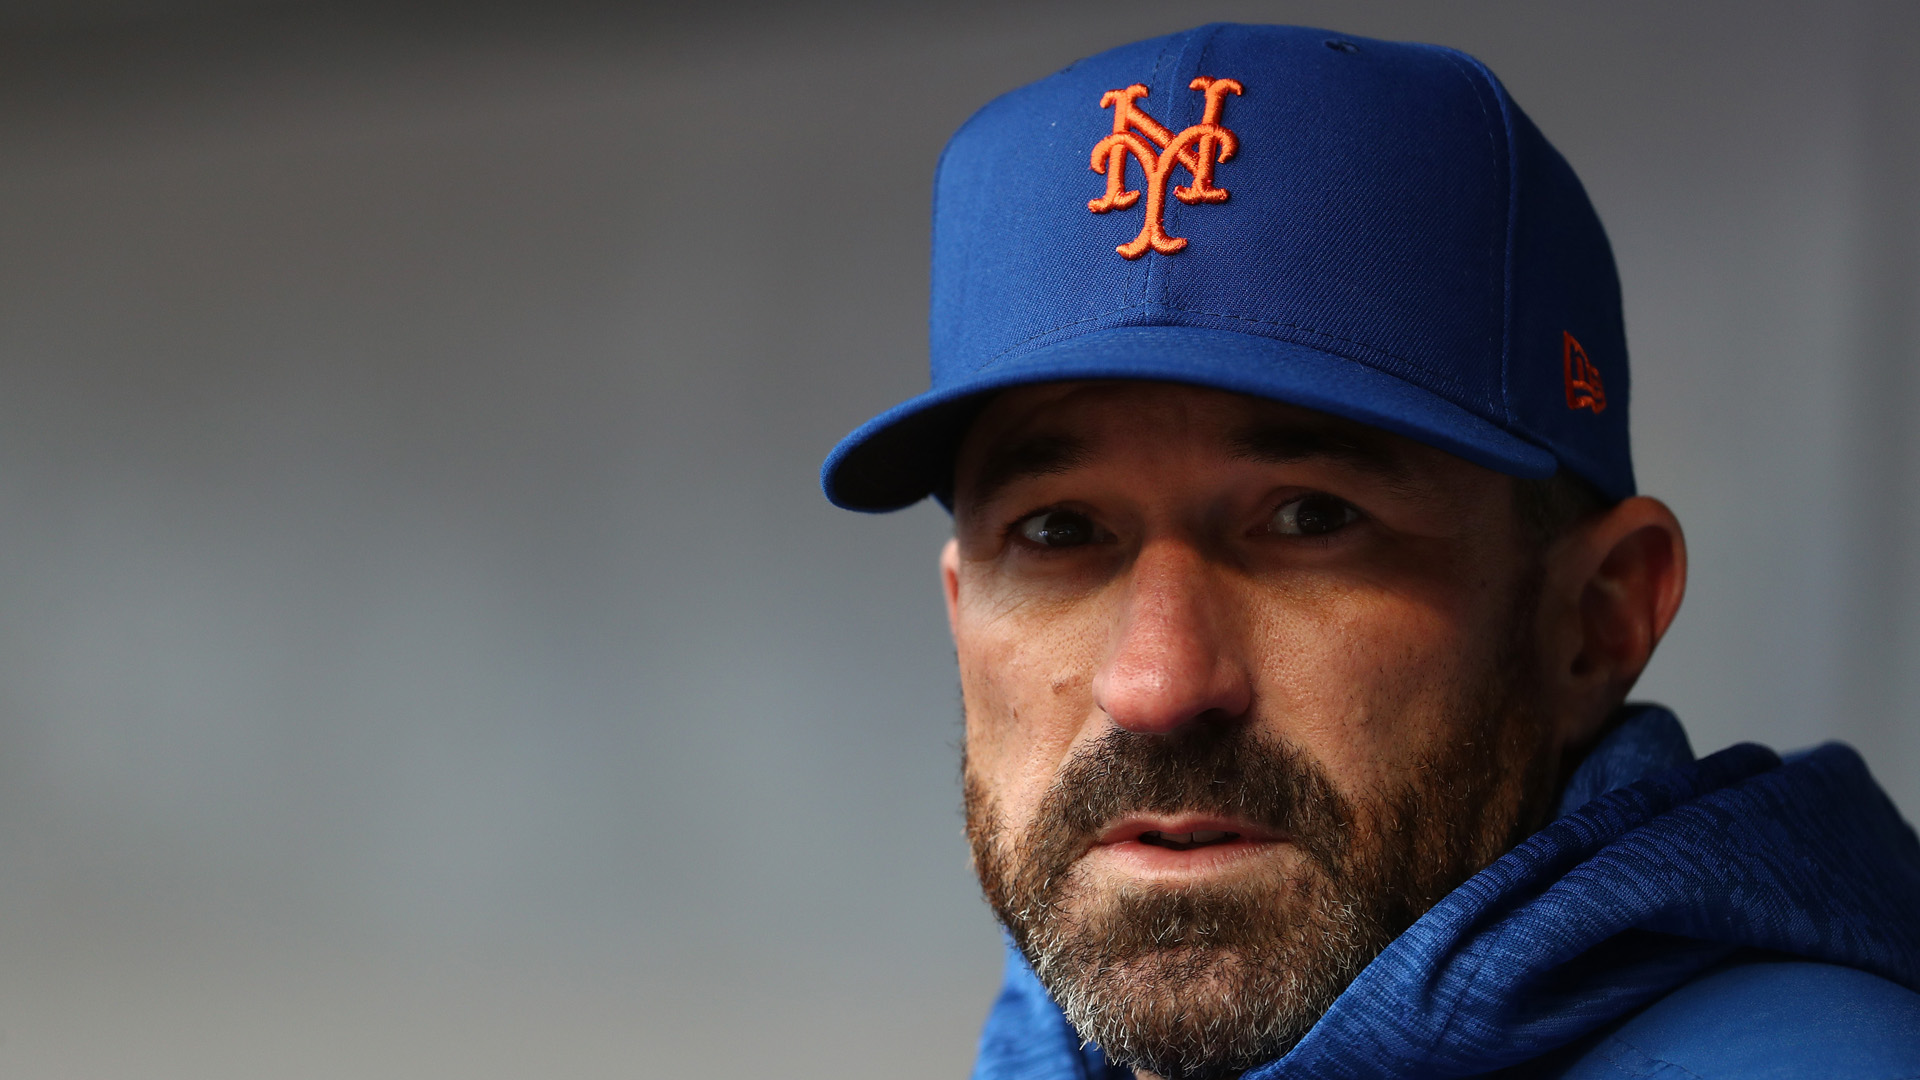 Mickey Callaway on hot seat status: 'I'm going to continue to lead this team to something special'